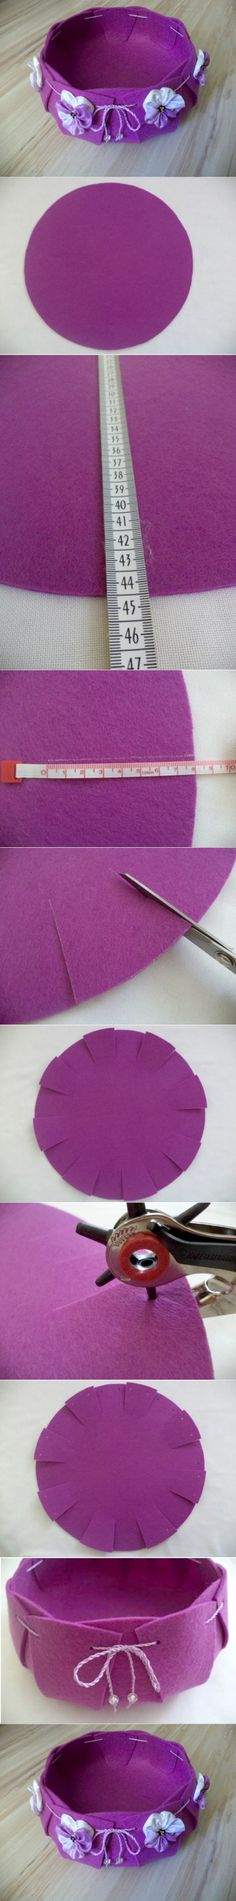 Contenitore in feltro: un tutorial semplice che non ha bisogno di parole! | This felt basket is easy to be made by cutting, punching holes and threading through. | #feltro #faidate #tutorial #facile #felt #DIY #howto